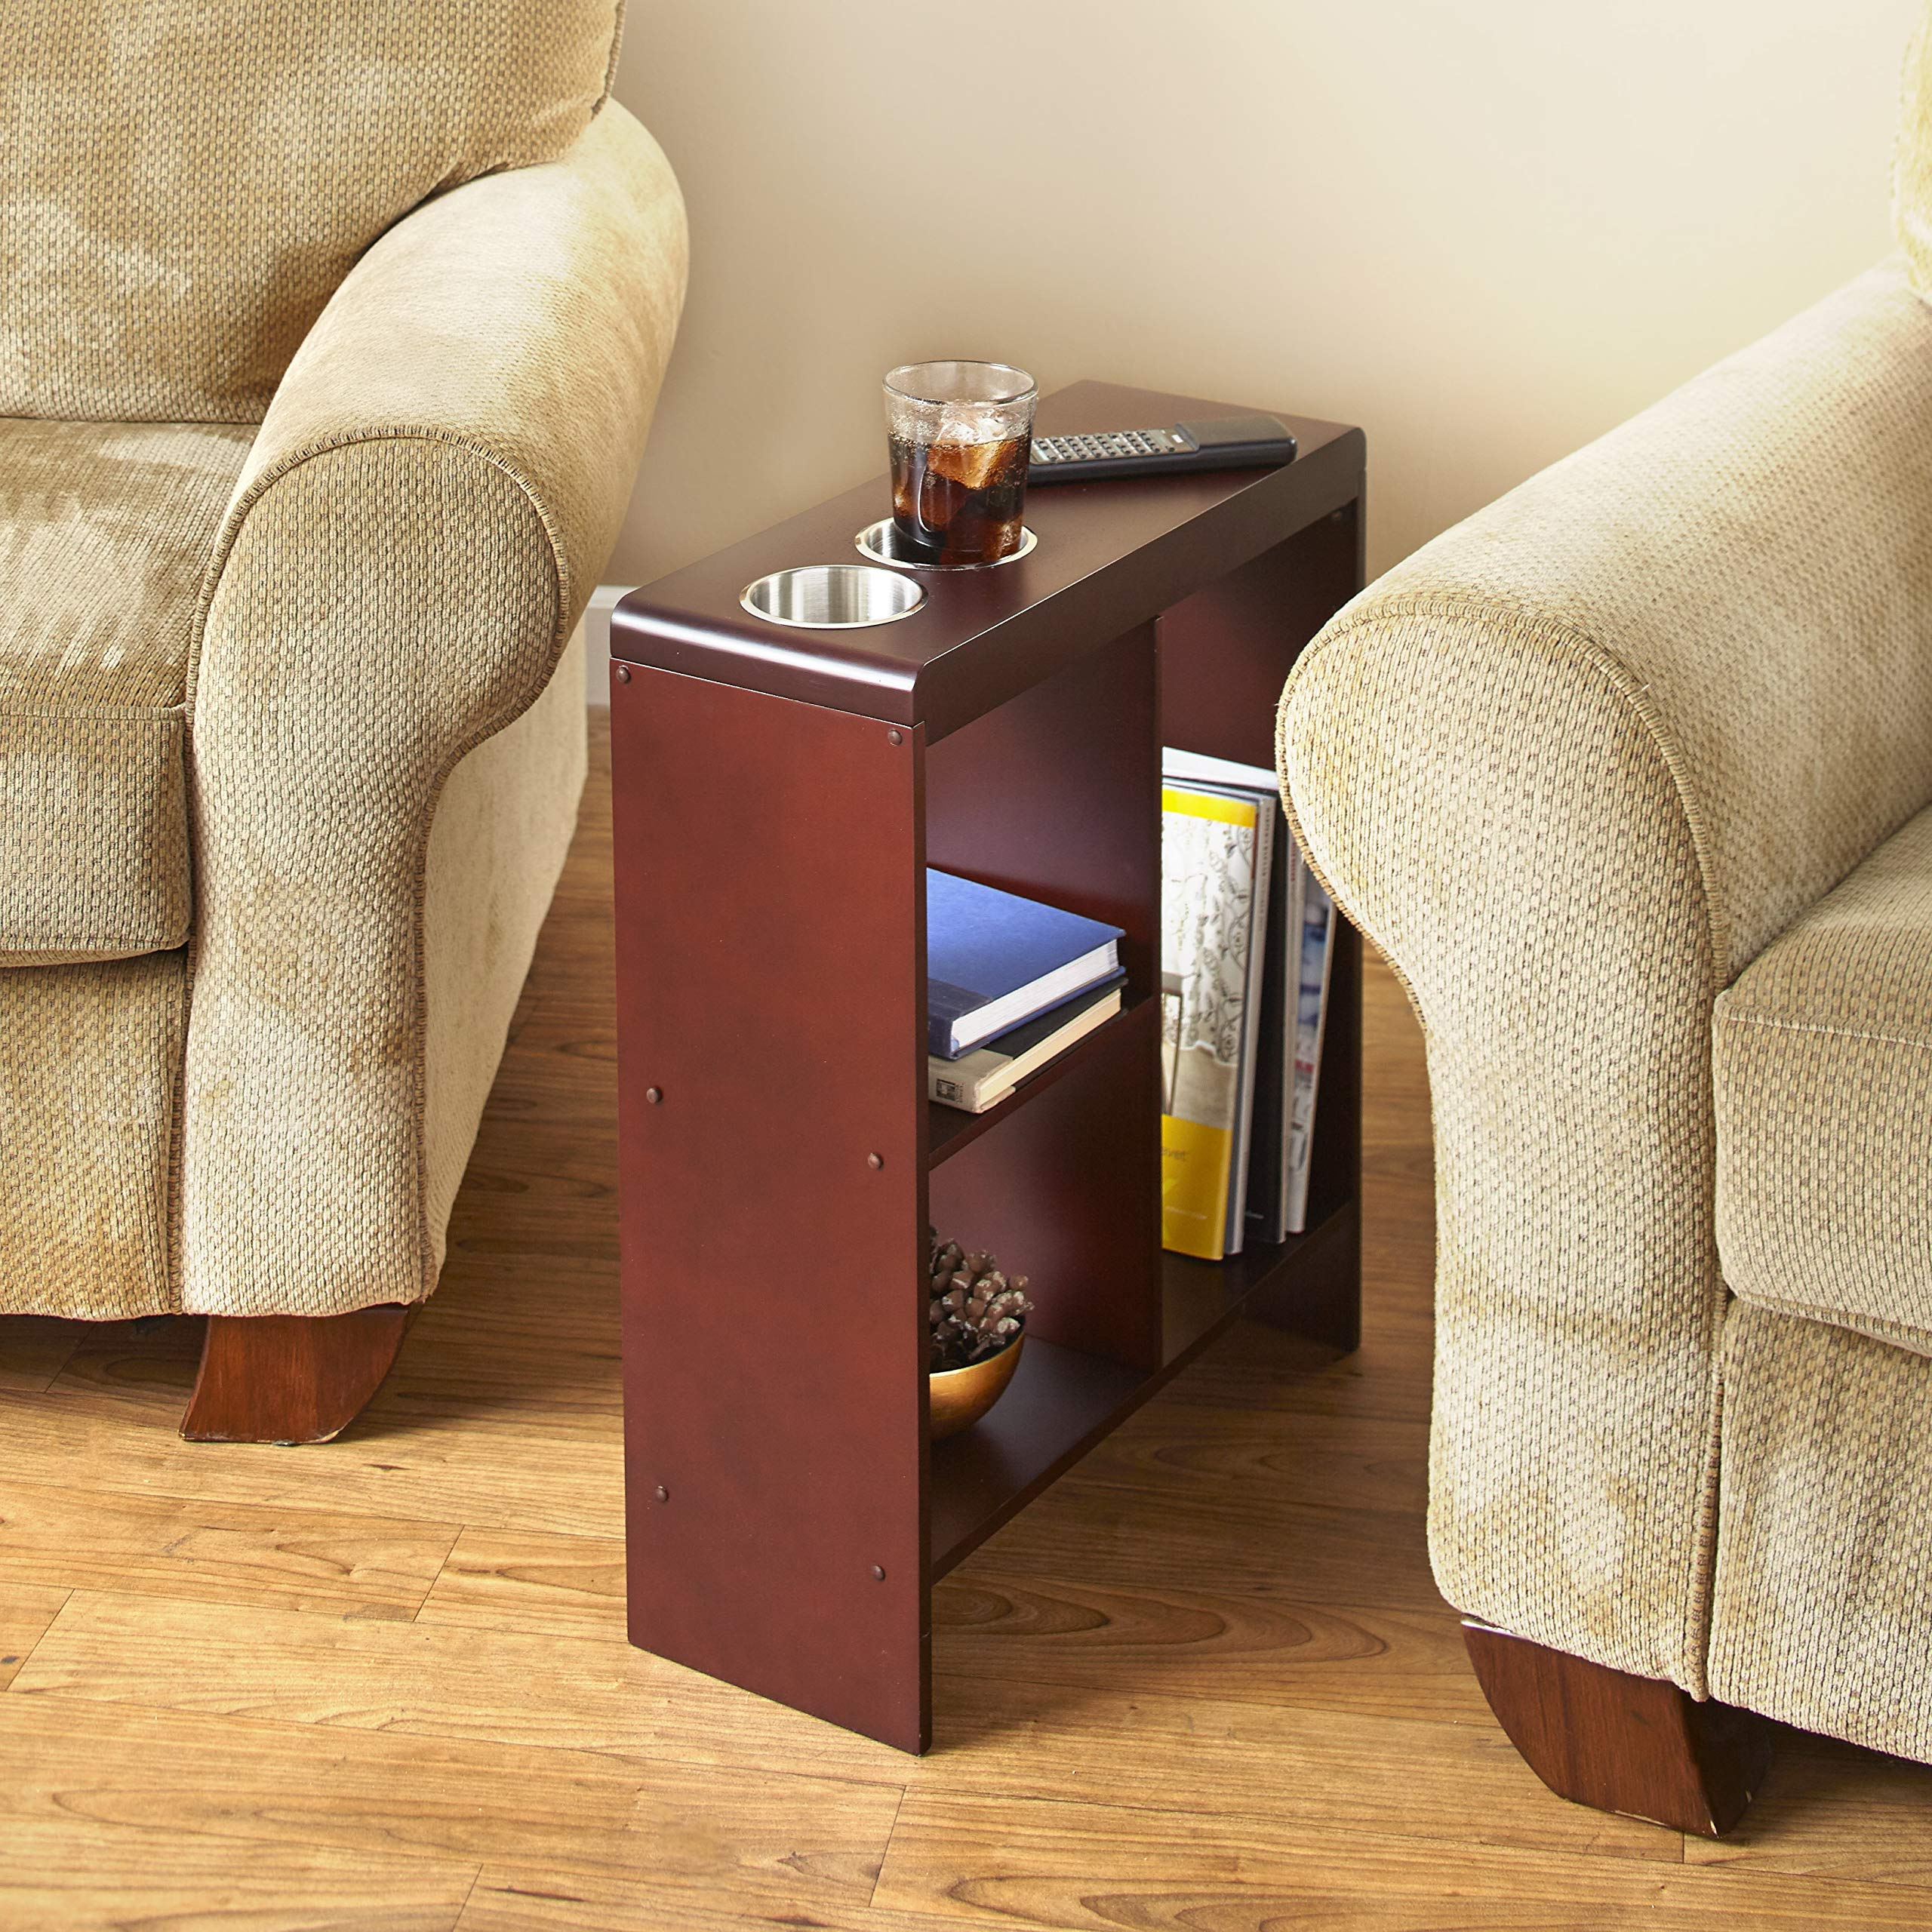 Slim End Table with Drink Holders and Built-in Shelving - Walnut Finish by The Lakeside Collection